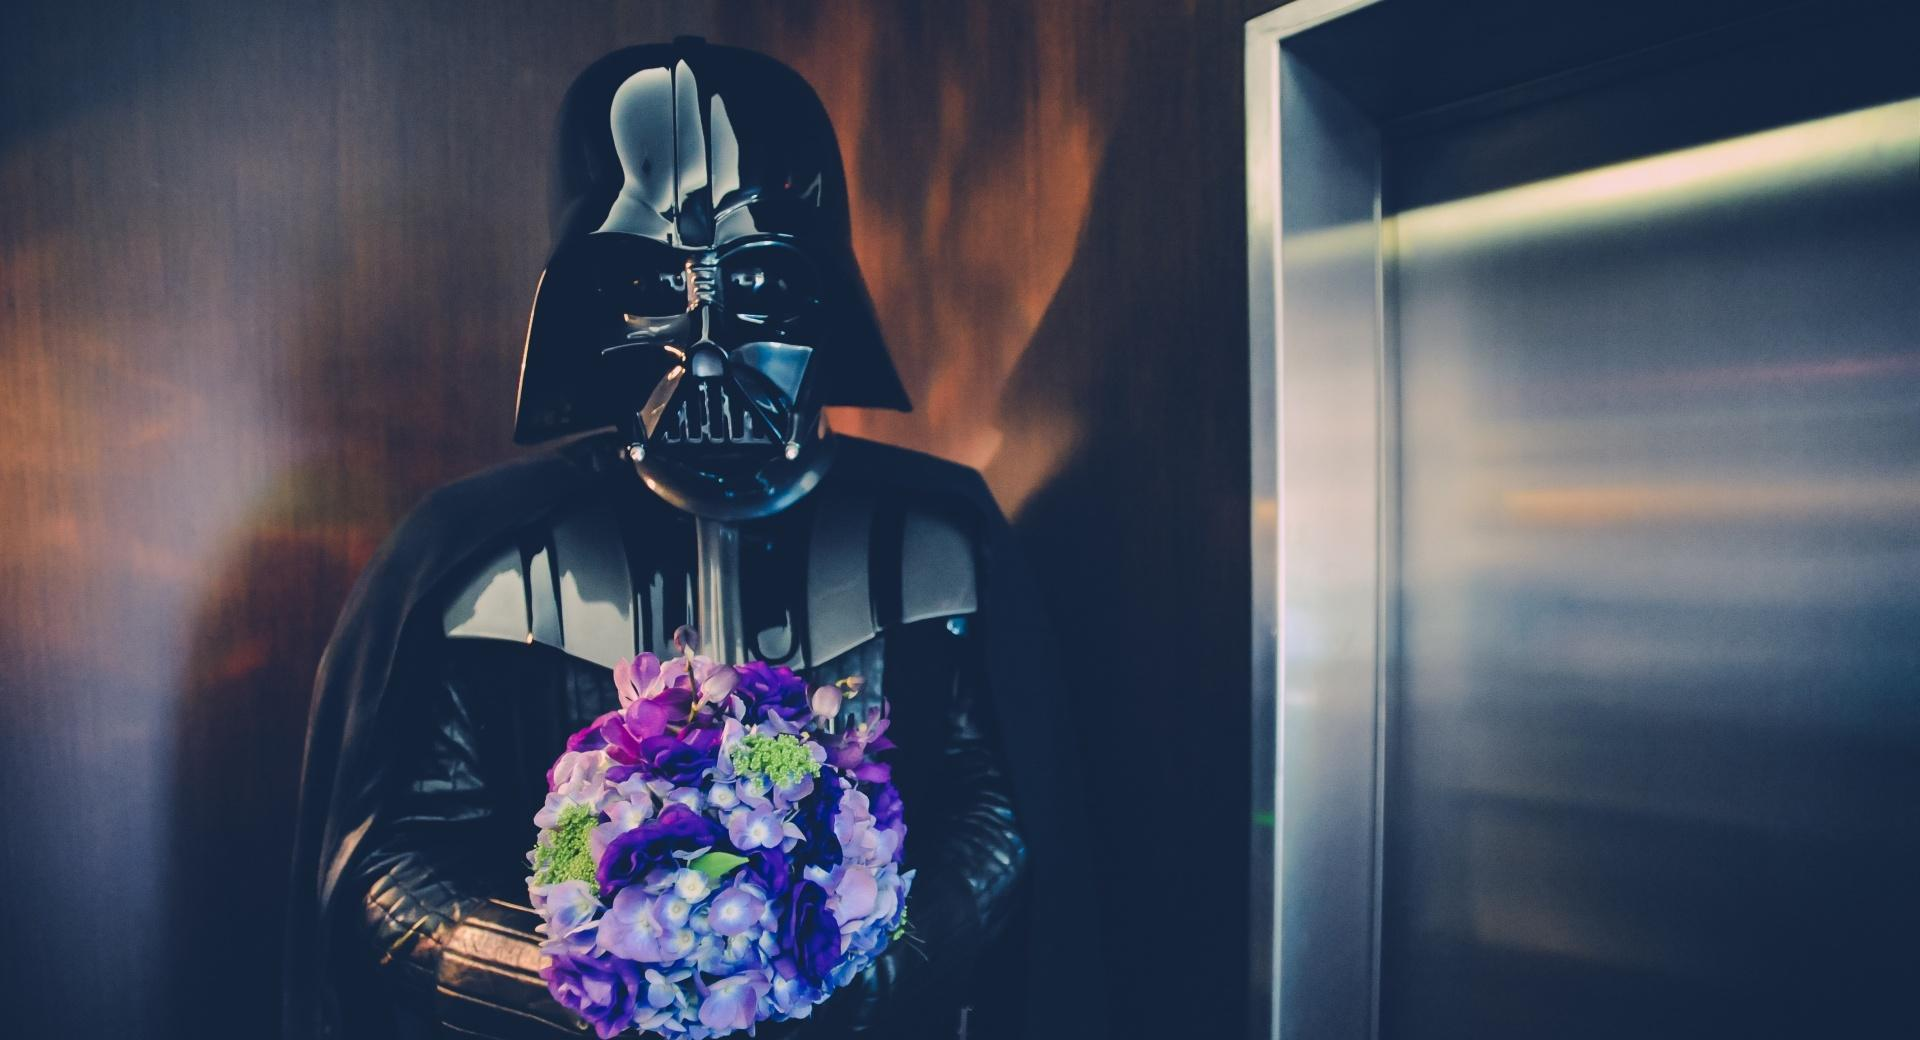 Darth Vader Wedding wallpapers HD quality